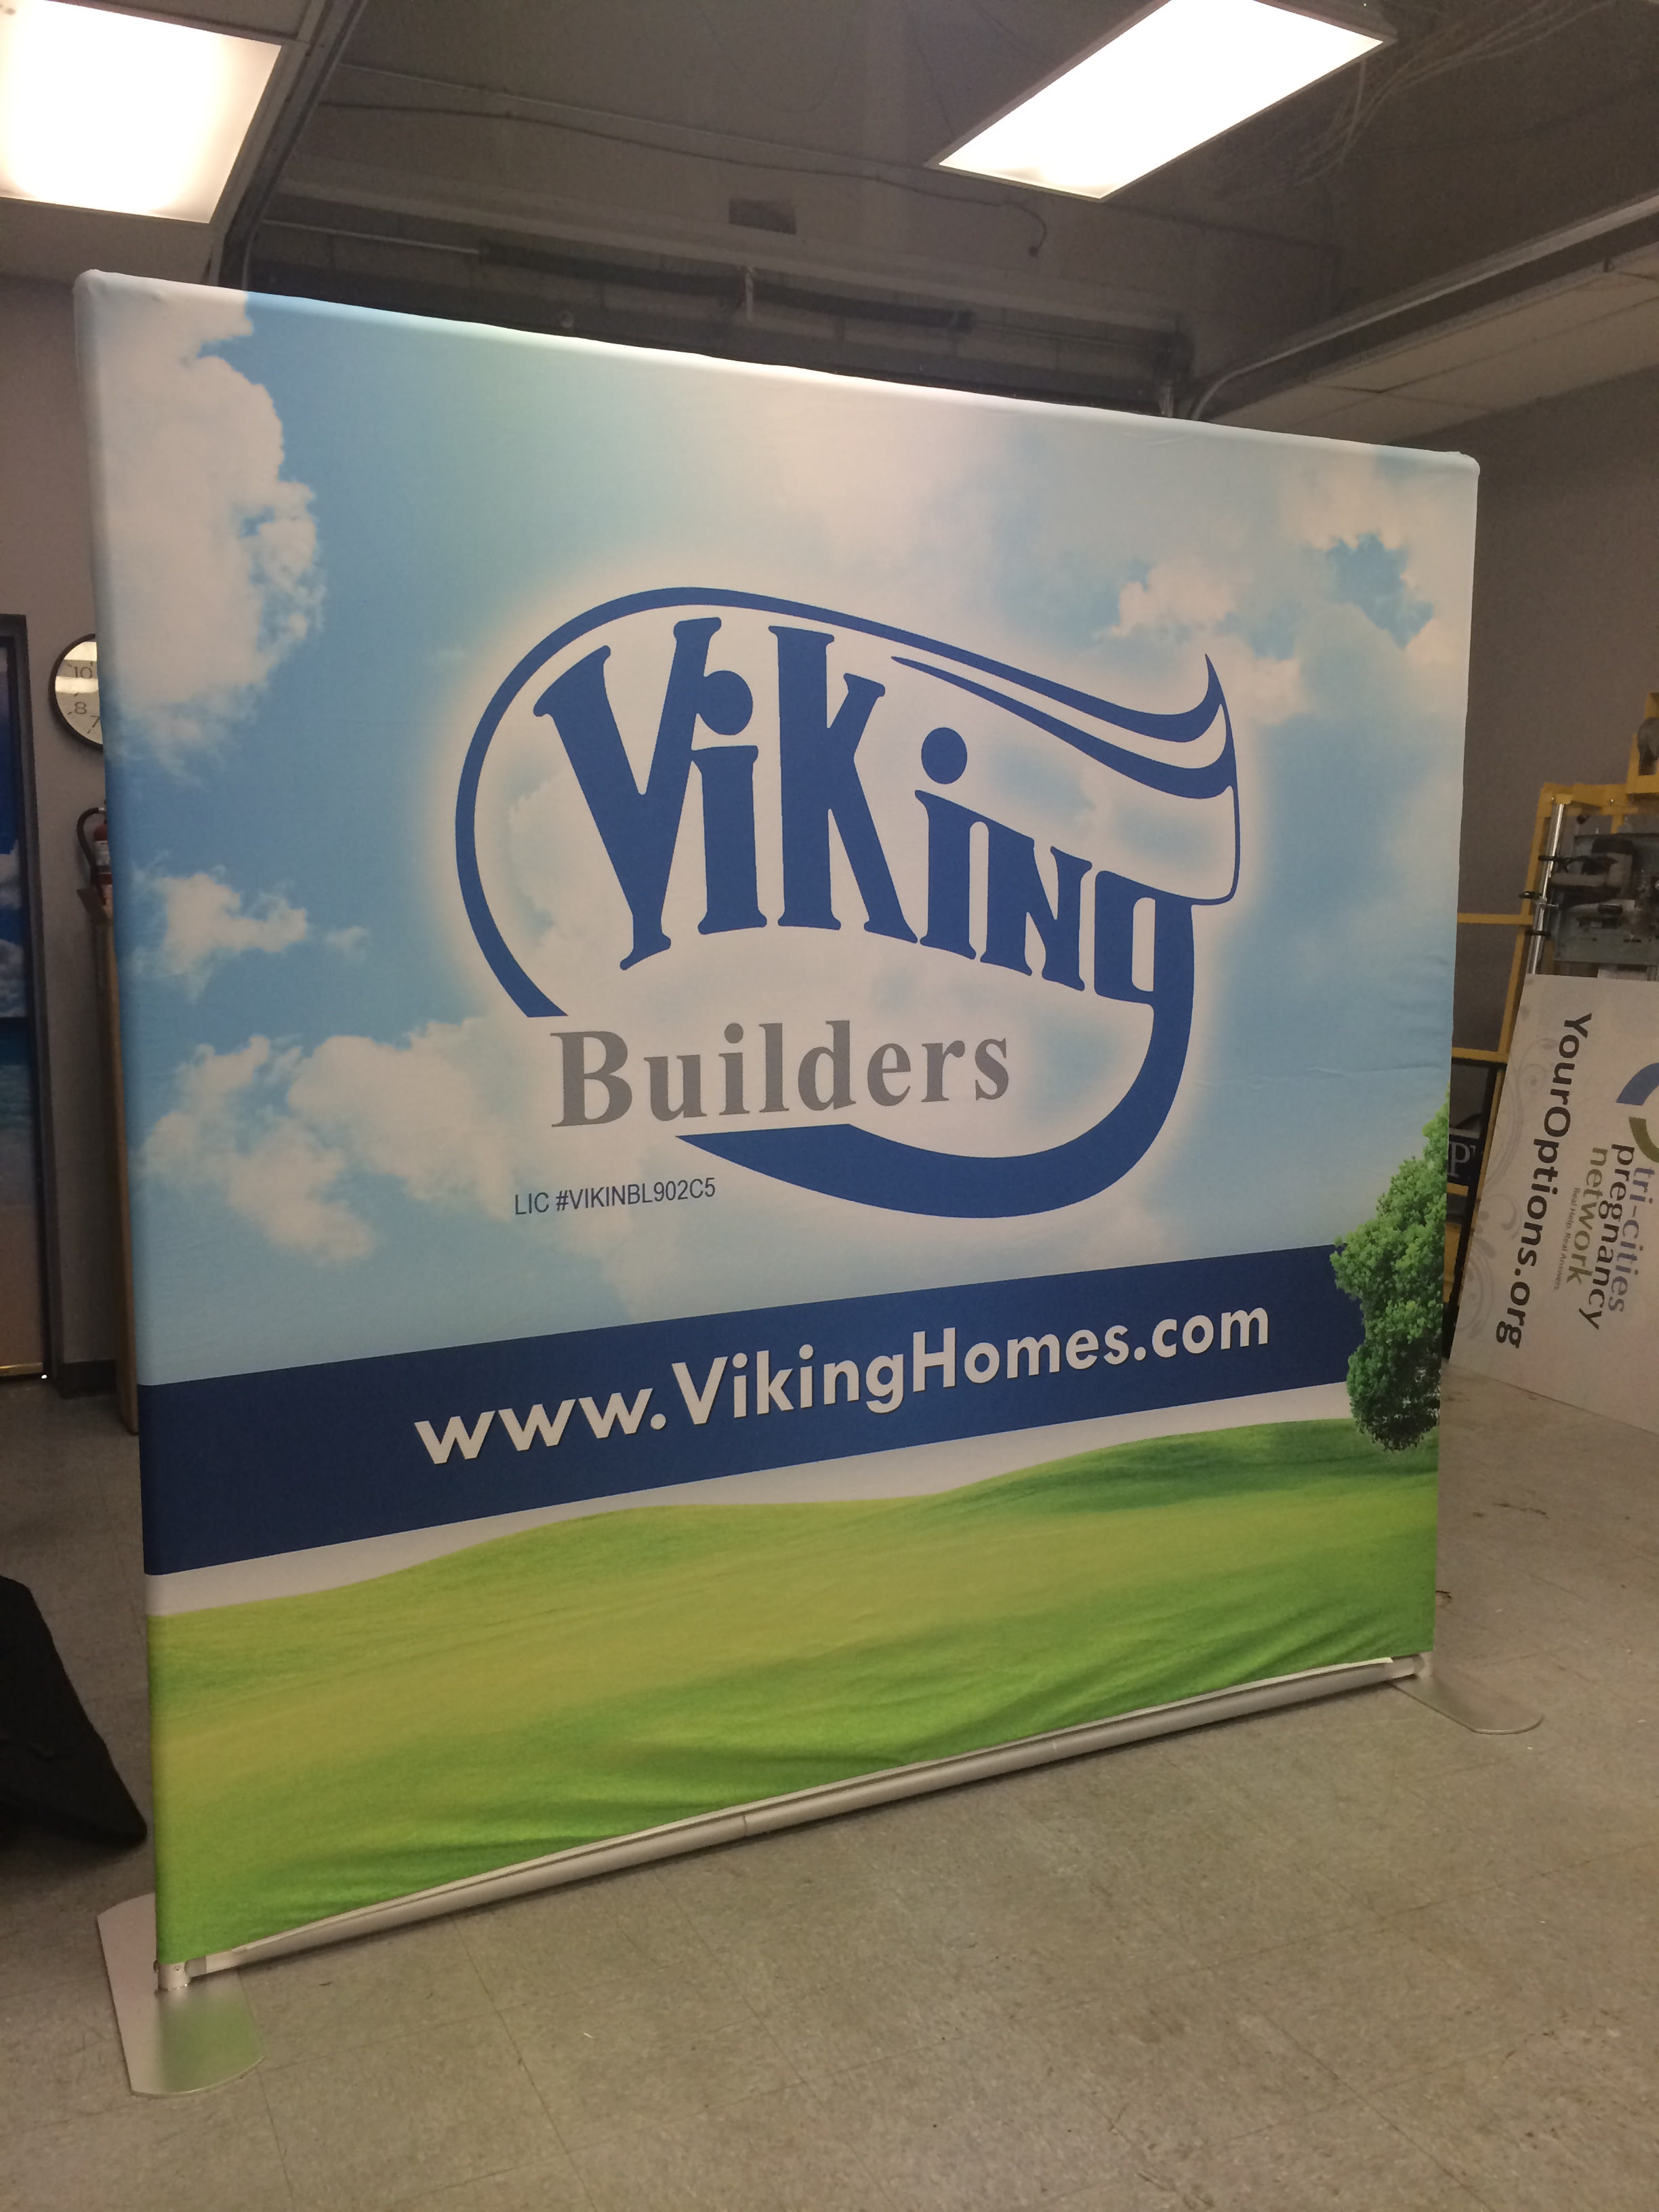 Viking Tradeshow Pop Up Display